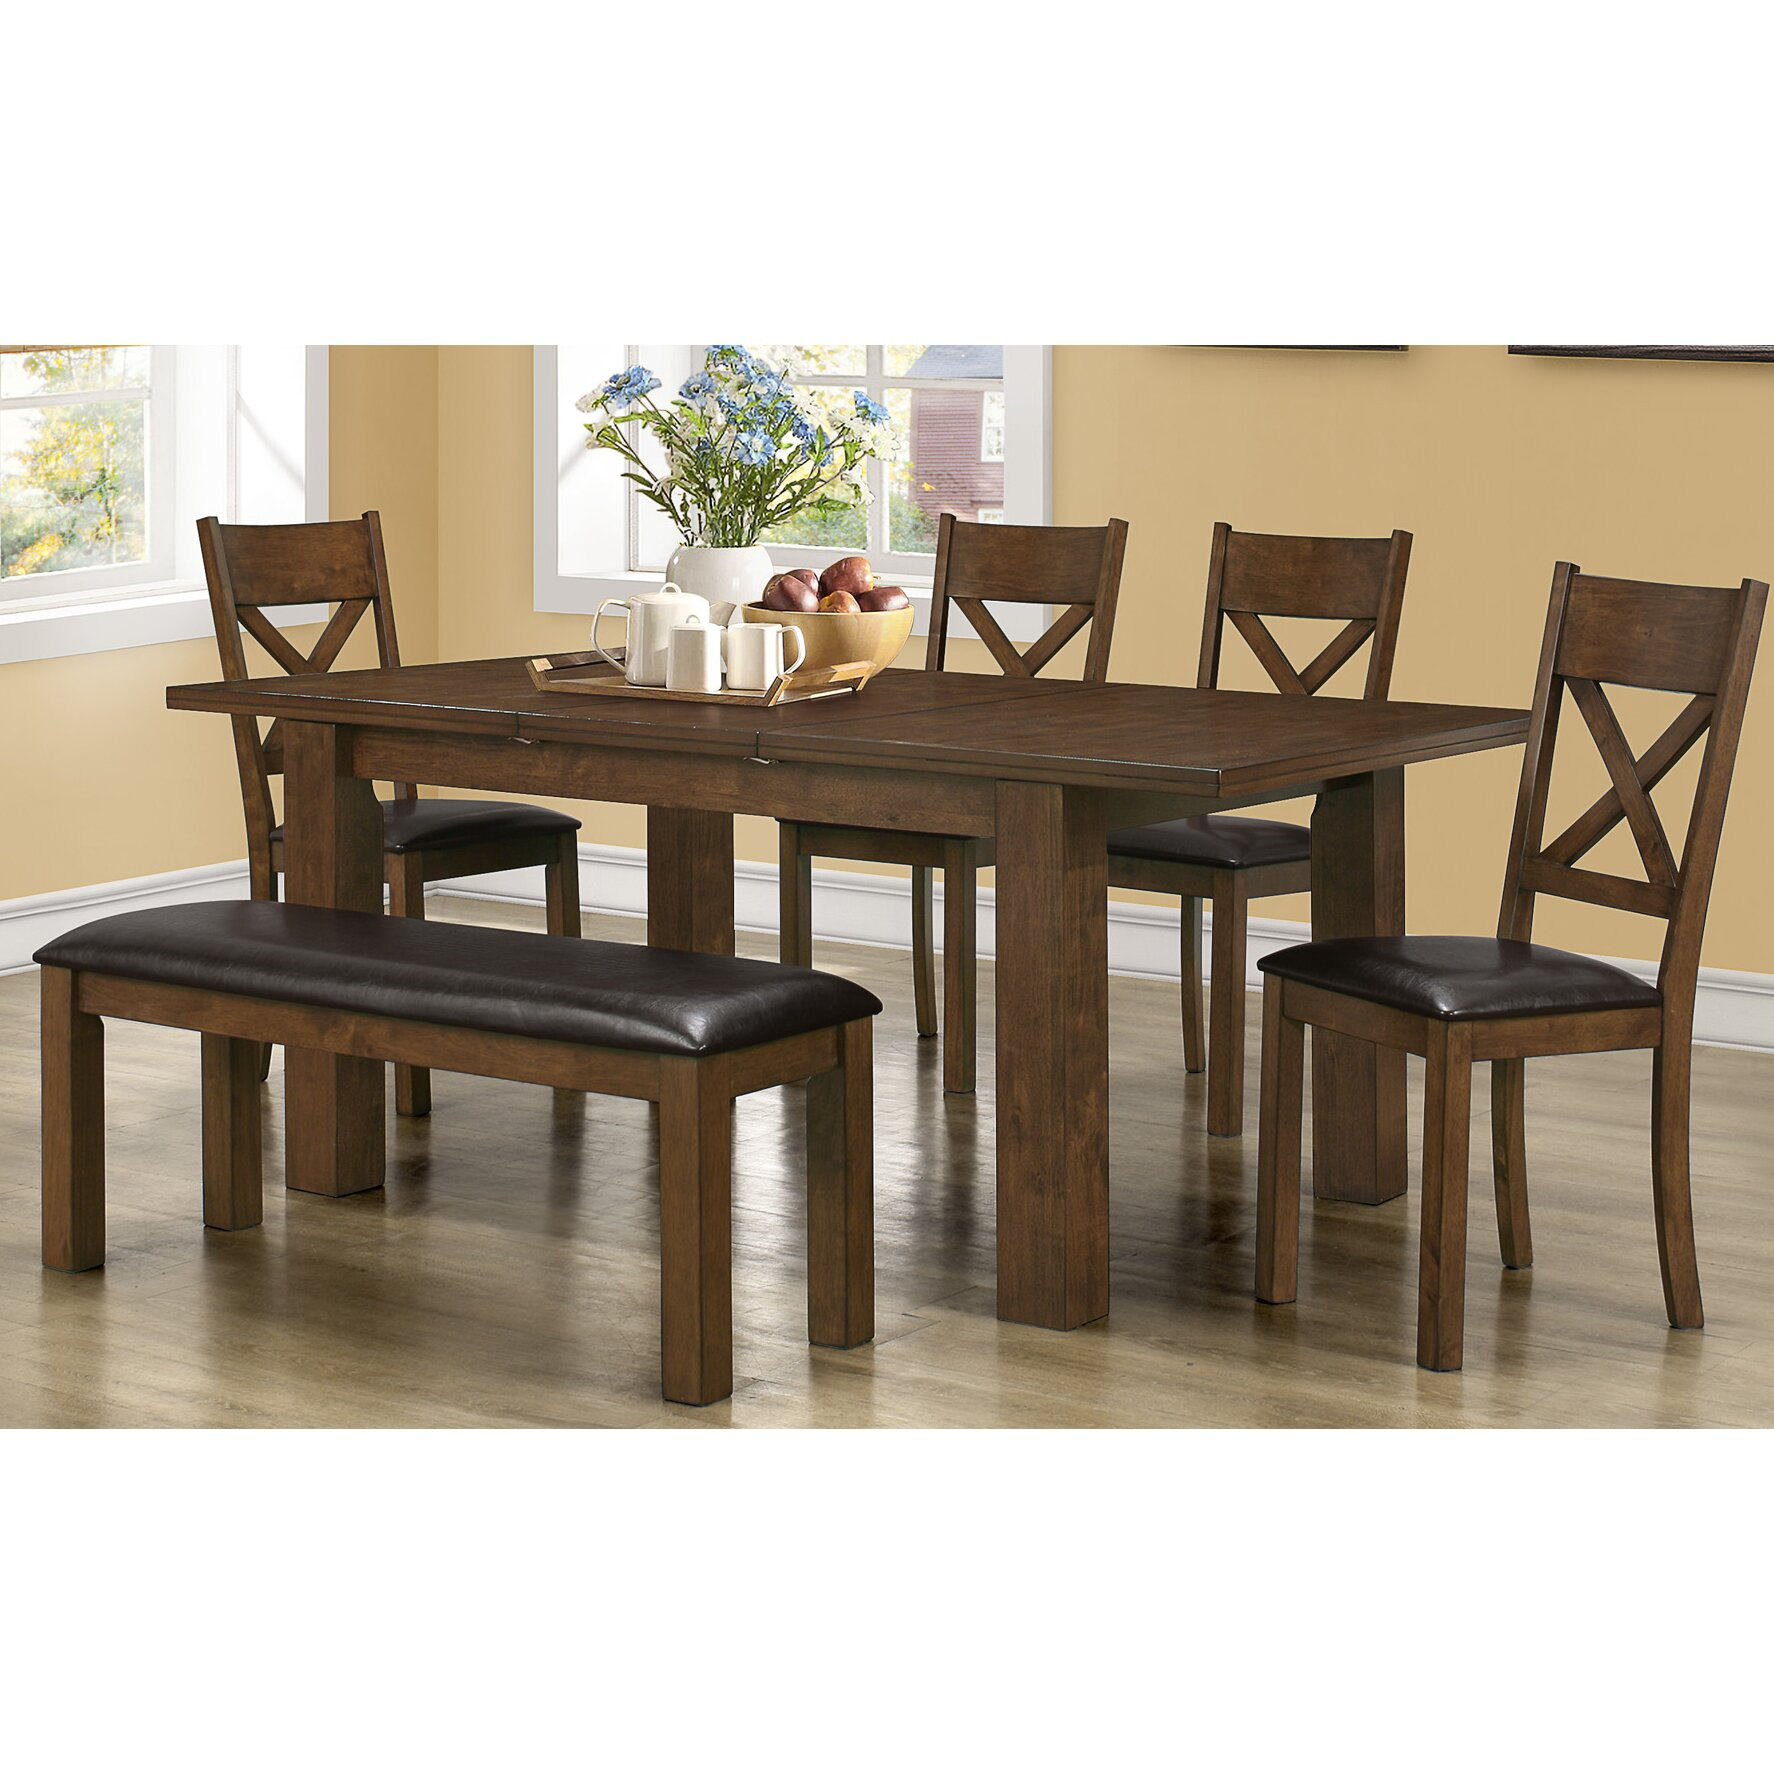 Monarch specialties inc extendible dining table wayfair for Wayfair dining table